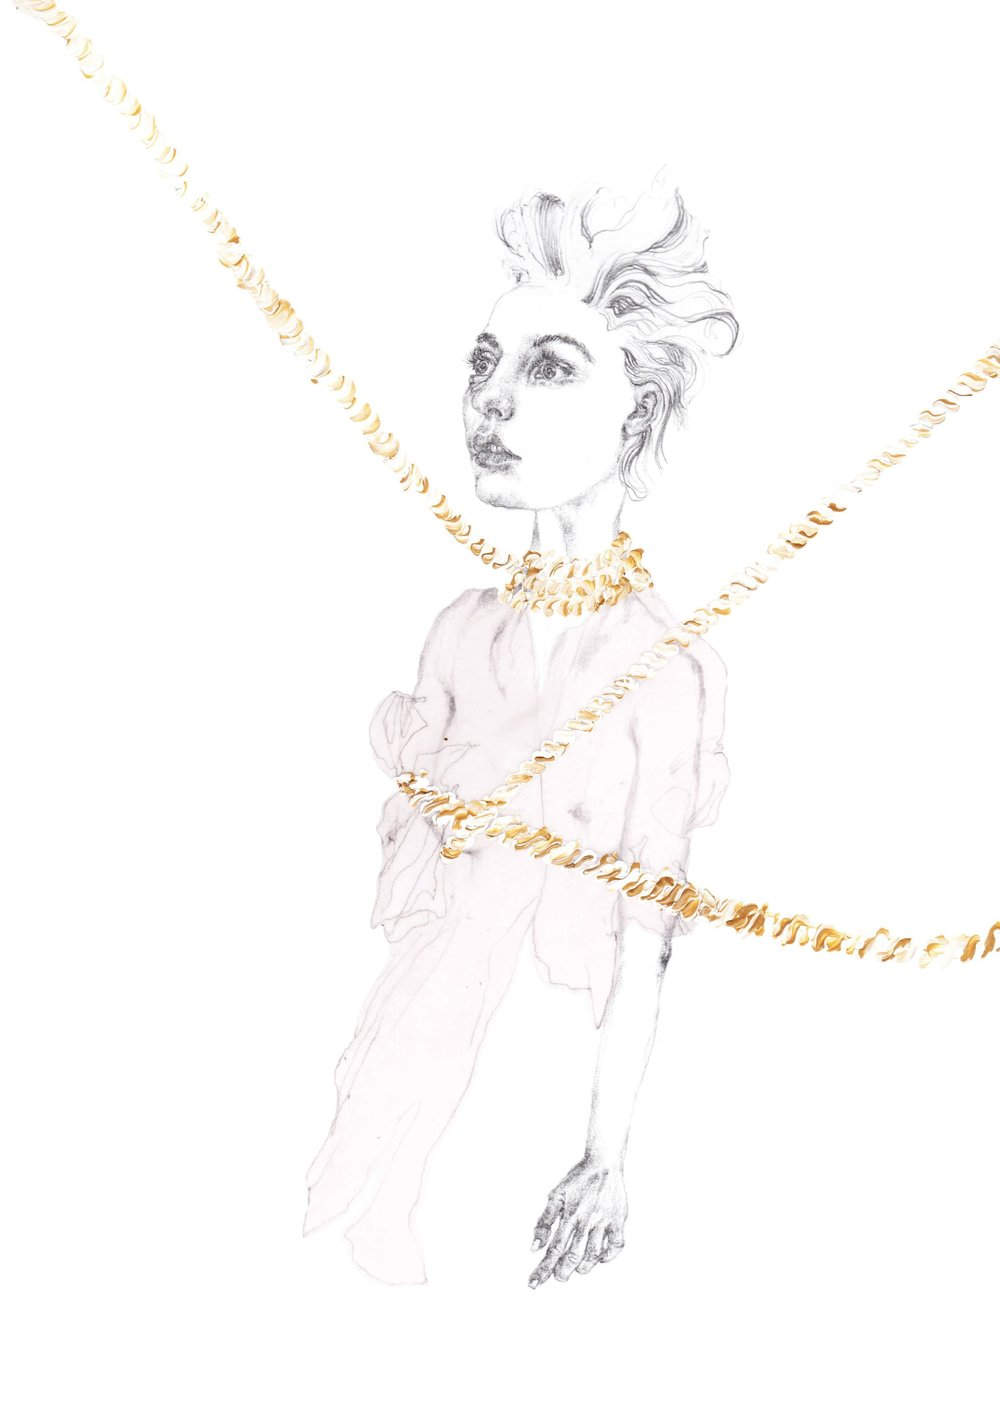 """Sadomasochism Bondage {Simone Rocha SS16}"" - Pencil & acrylic on heavyweight paper - 20 cm x 30 cm"